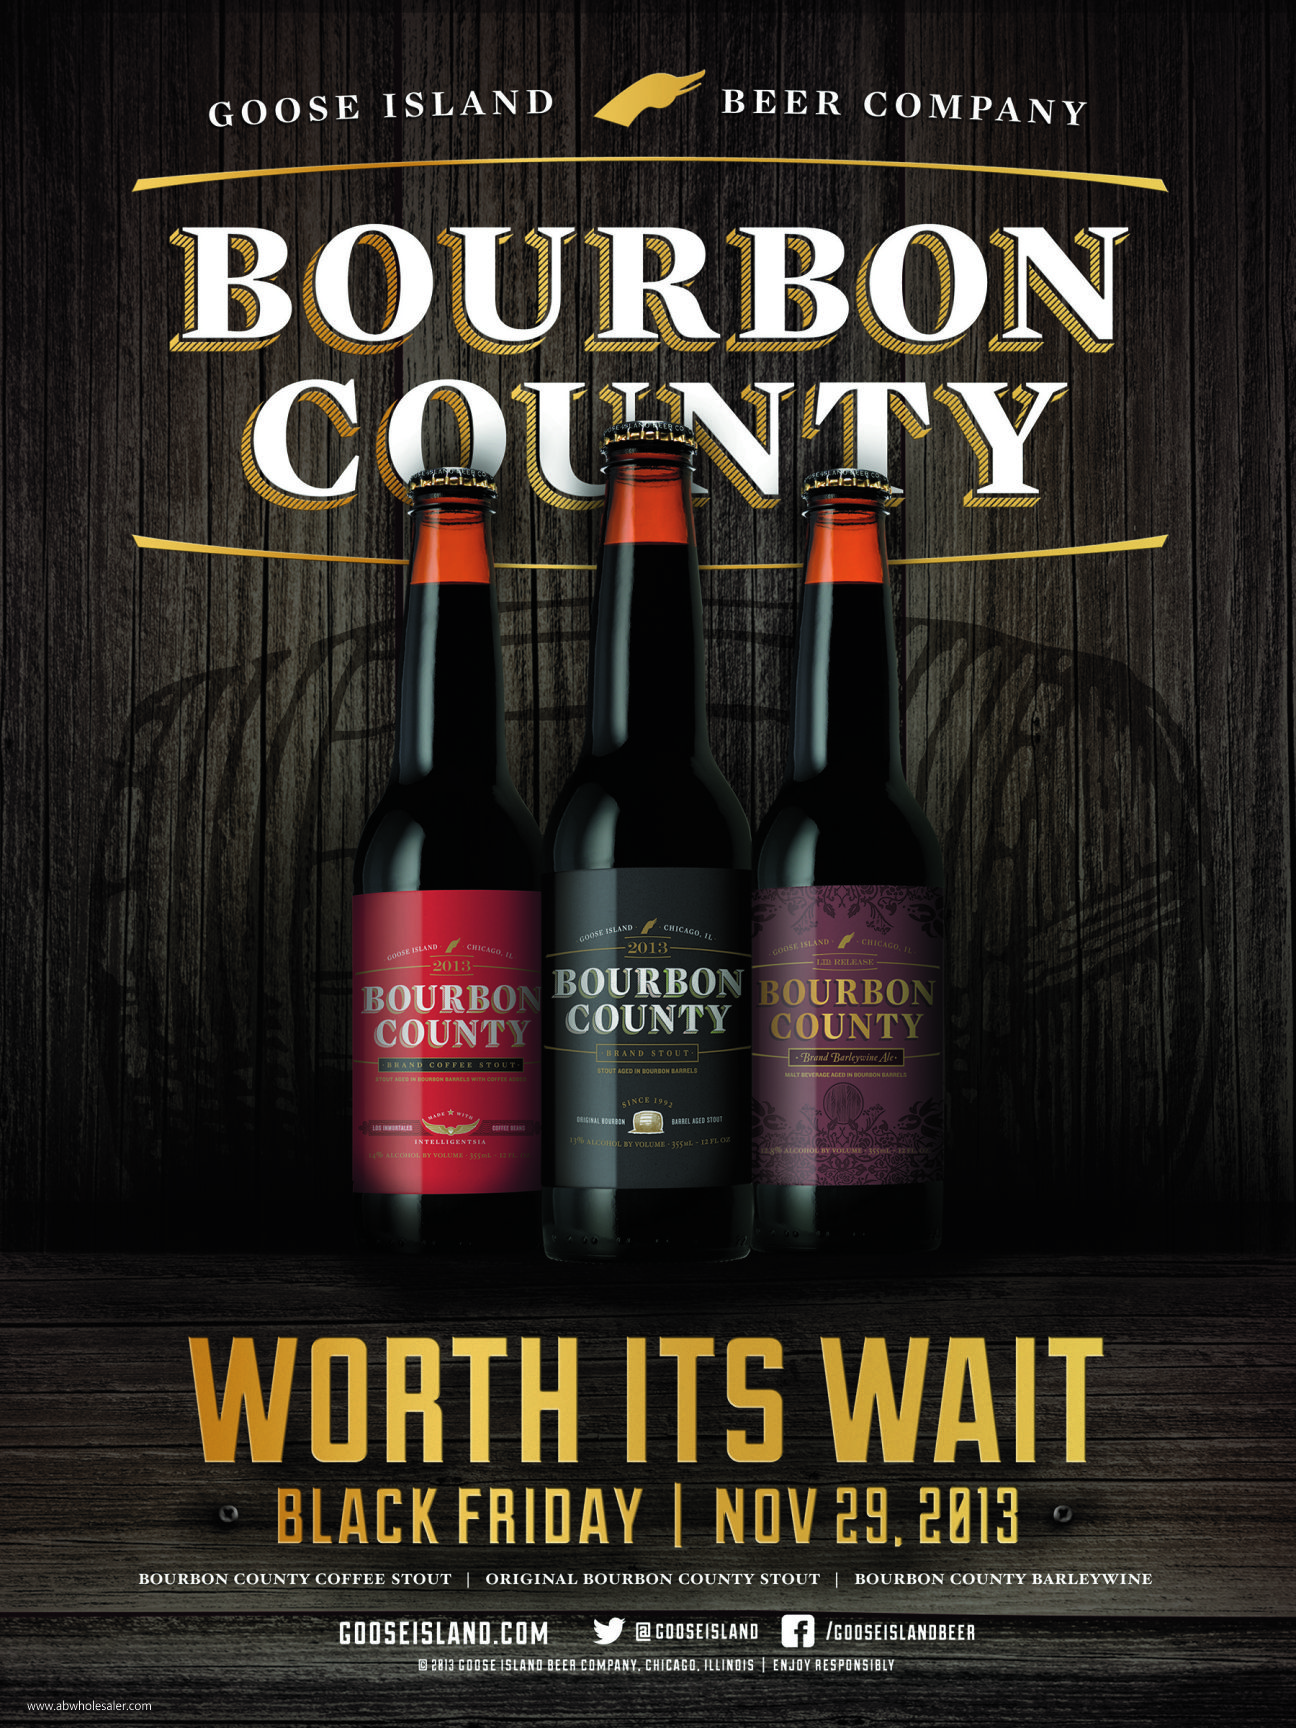 Bourbon County Backyard Rye bourbon county series worth wait - houstonchronicle